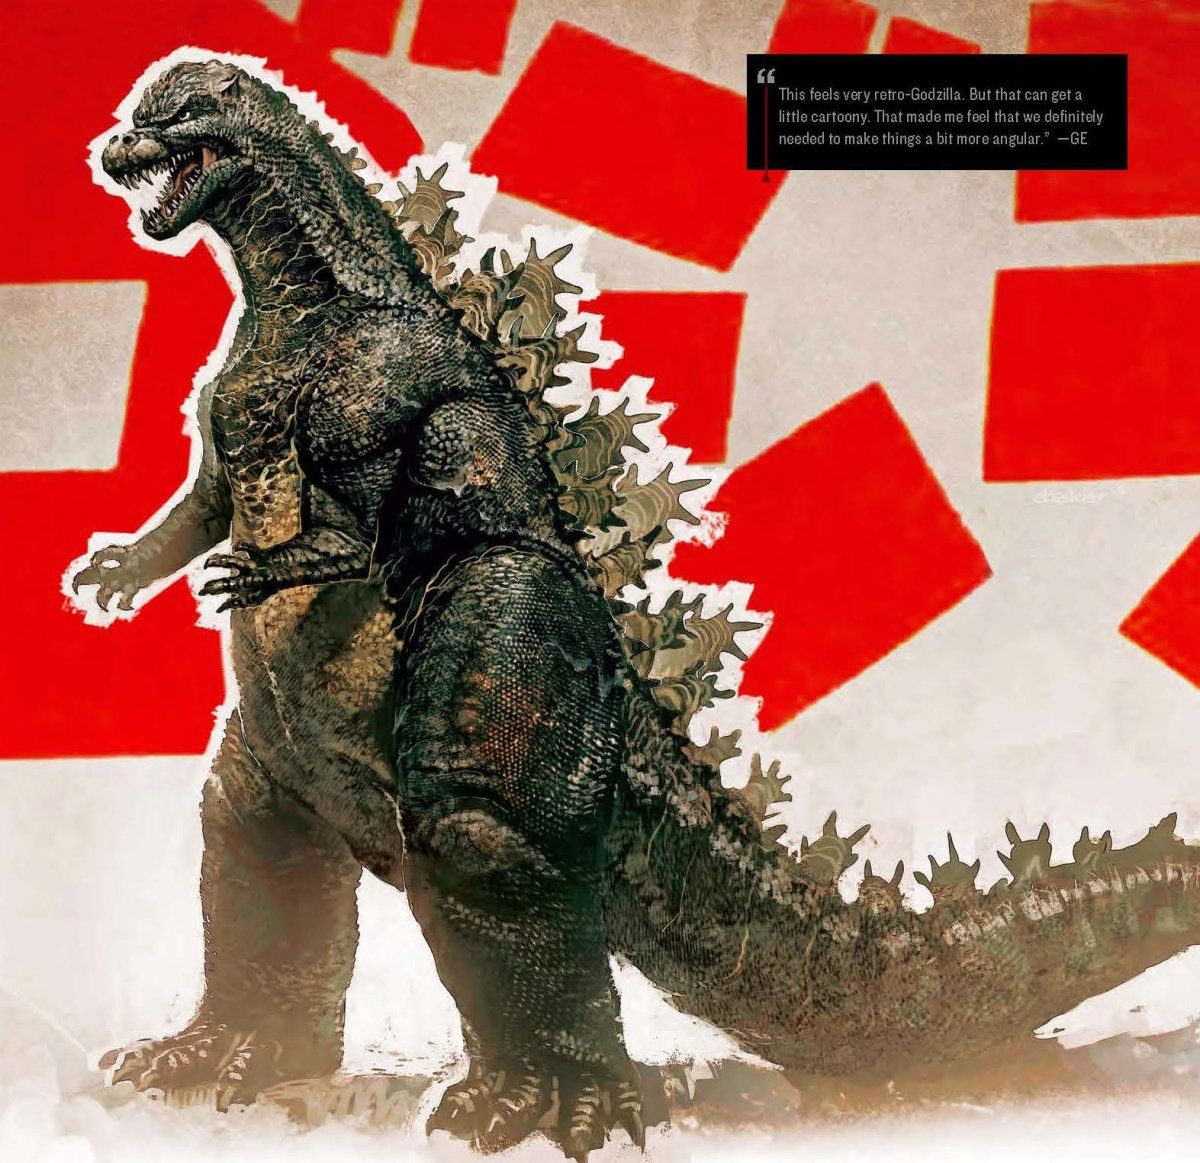 """""""This feels very retro-Godzilla,"""" said Edwards. """"But that can get a little cartoony. That made me feel that we definitely needed to make things a bit more angular."""""""